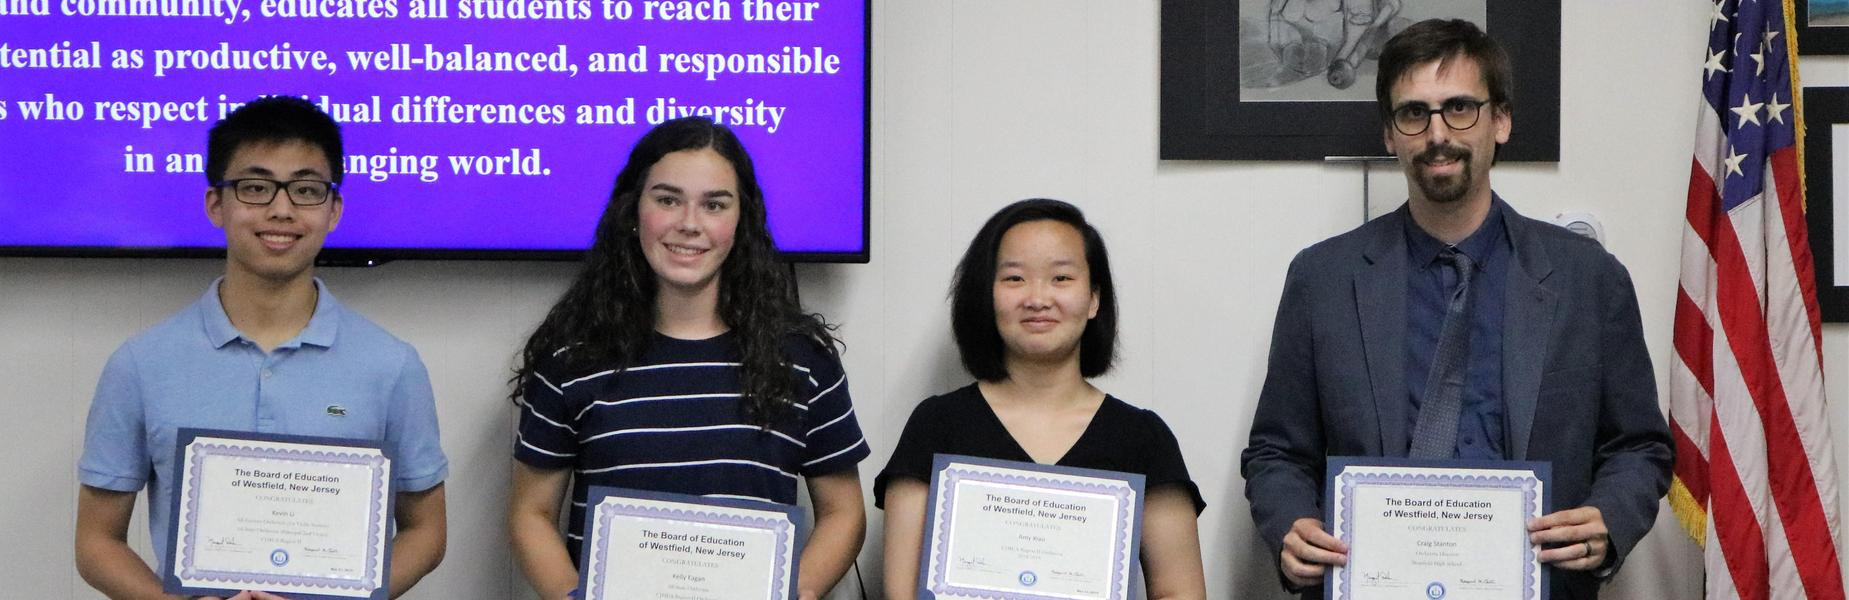 Photo of Westfield High School orchestra students and their instructor holding certificates of recognition at May 21 Board of Education meeting.